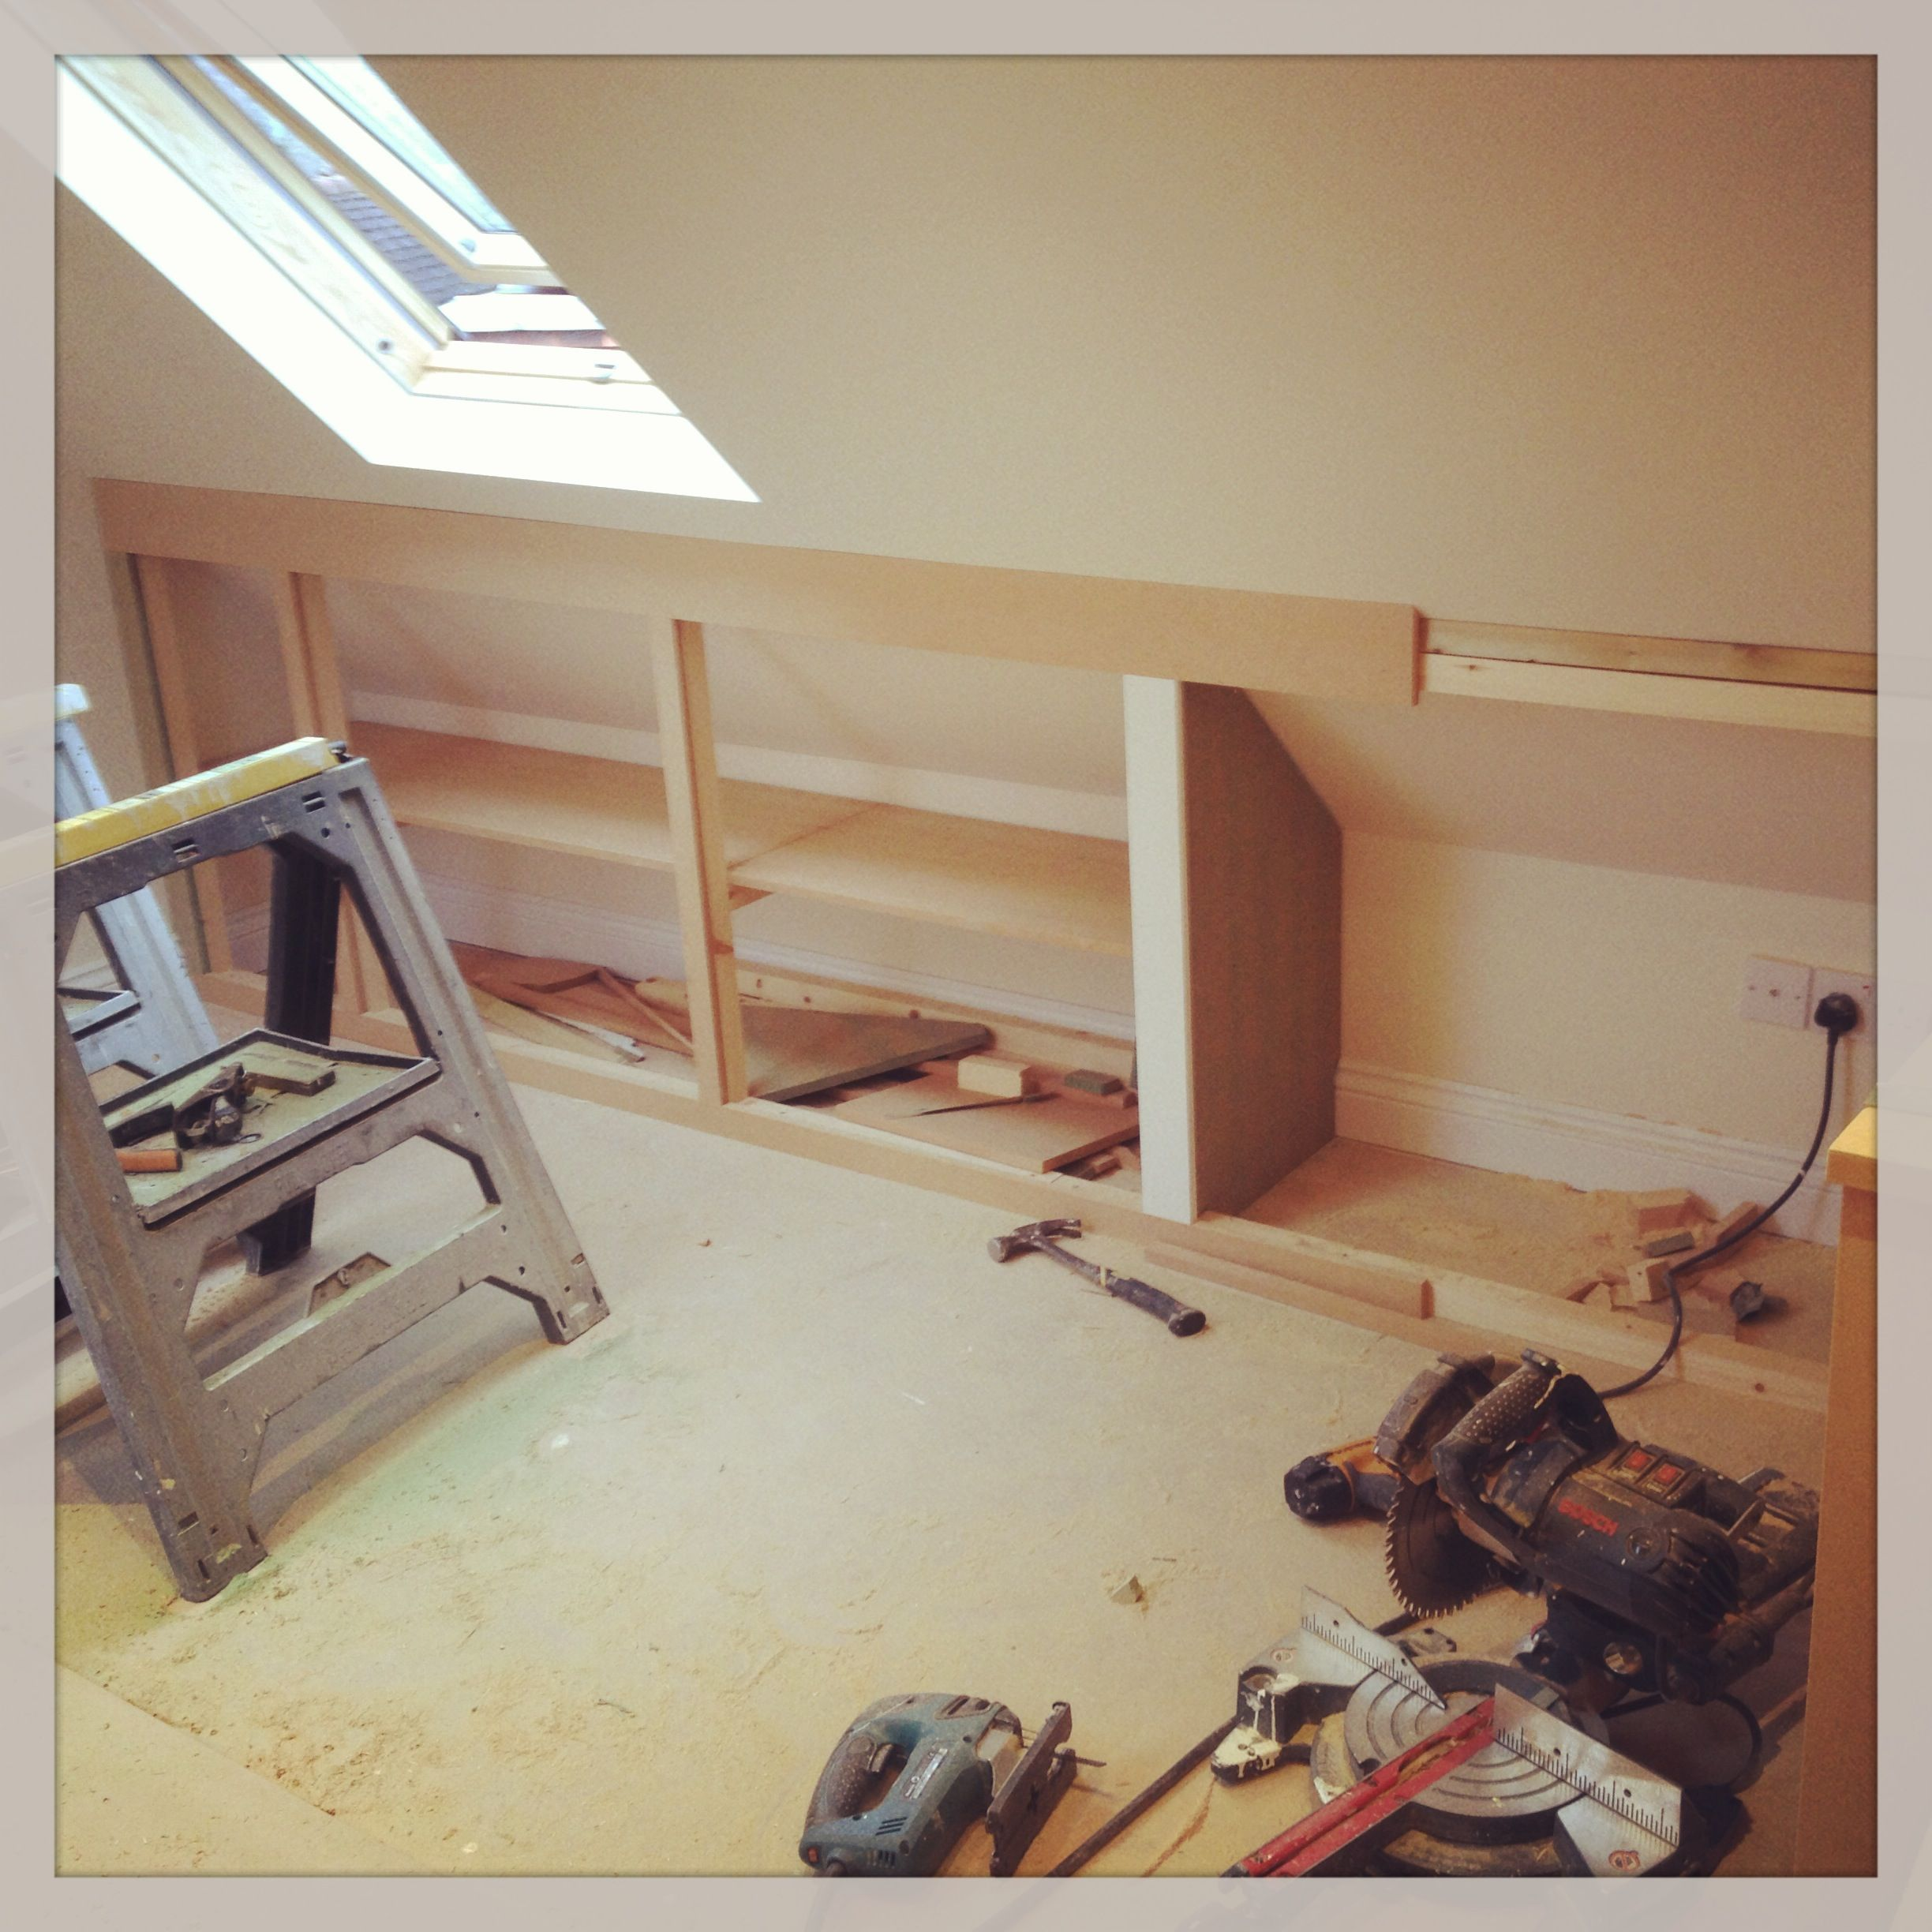 Loft Storage Loft Storage Work In Progress Wwwfittedbespokefurniturecouk